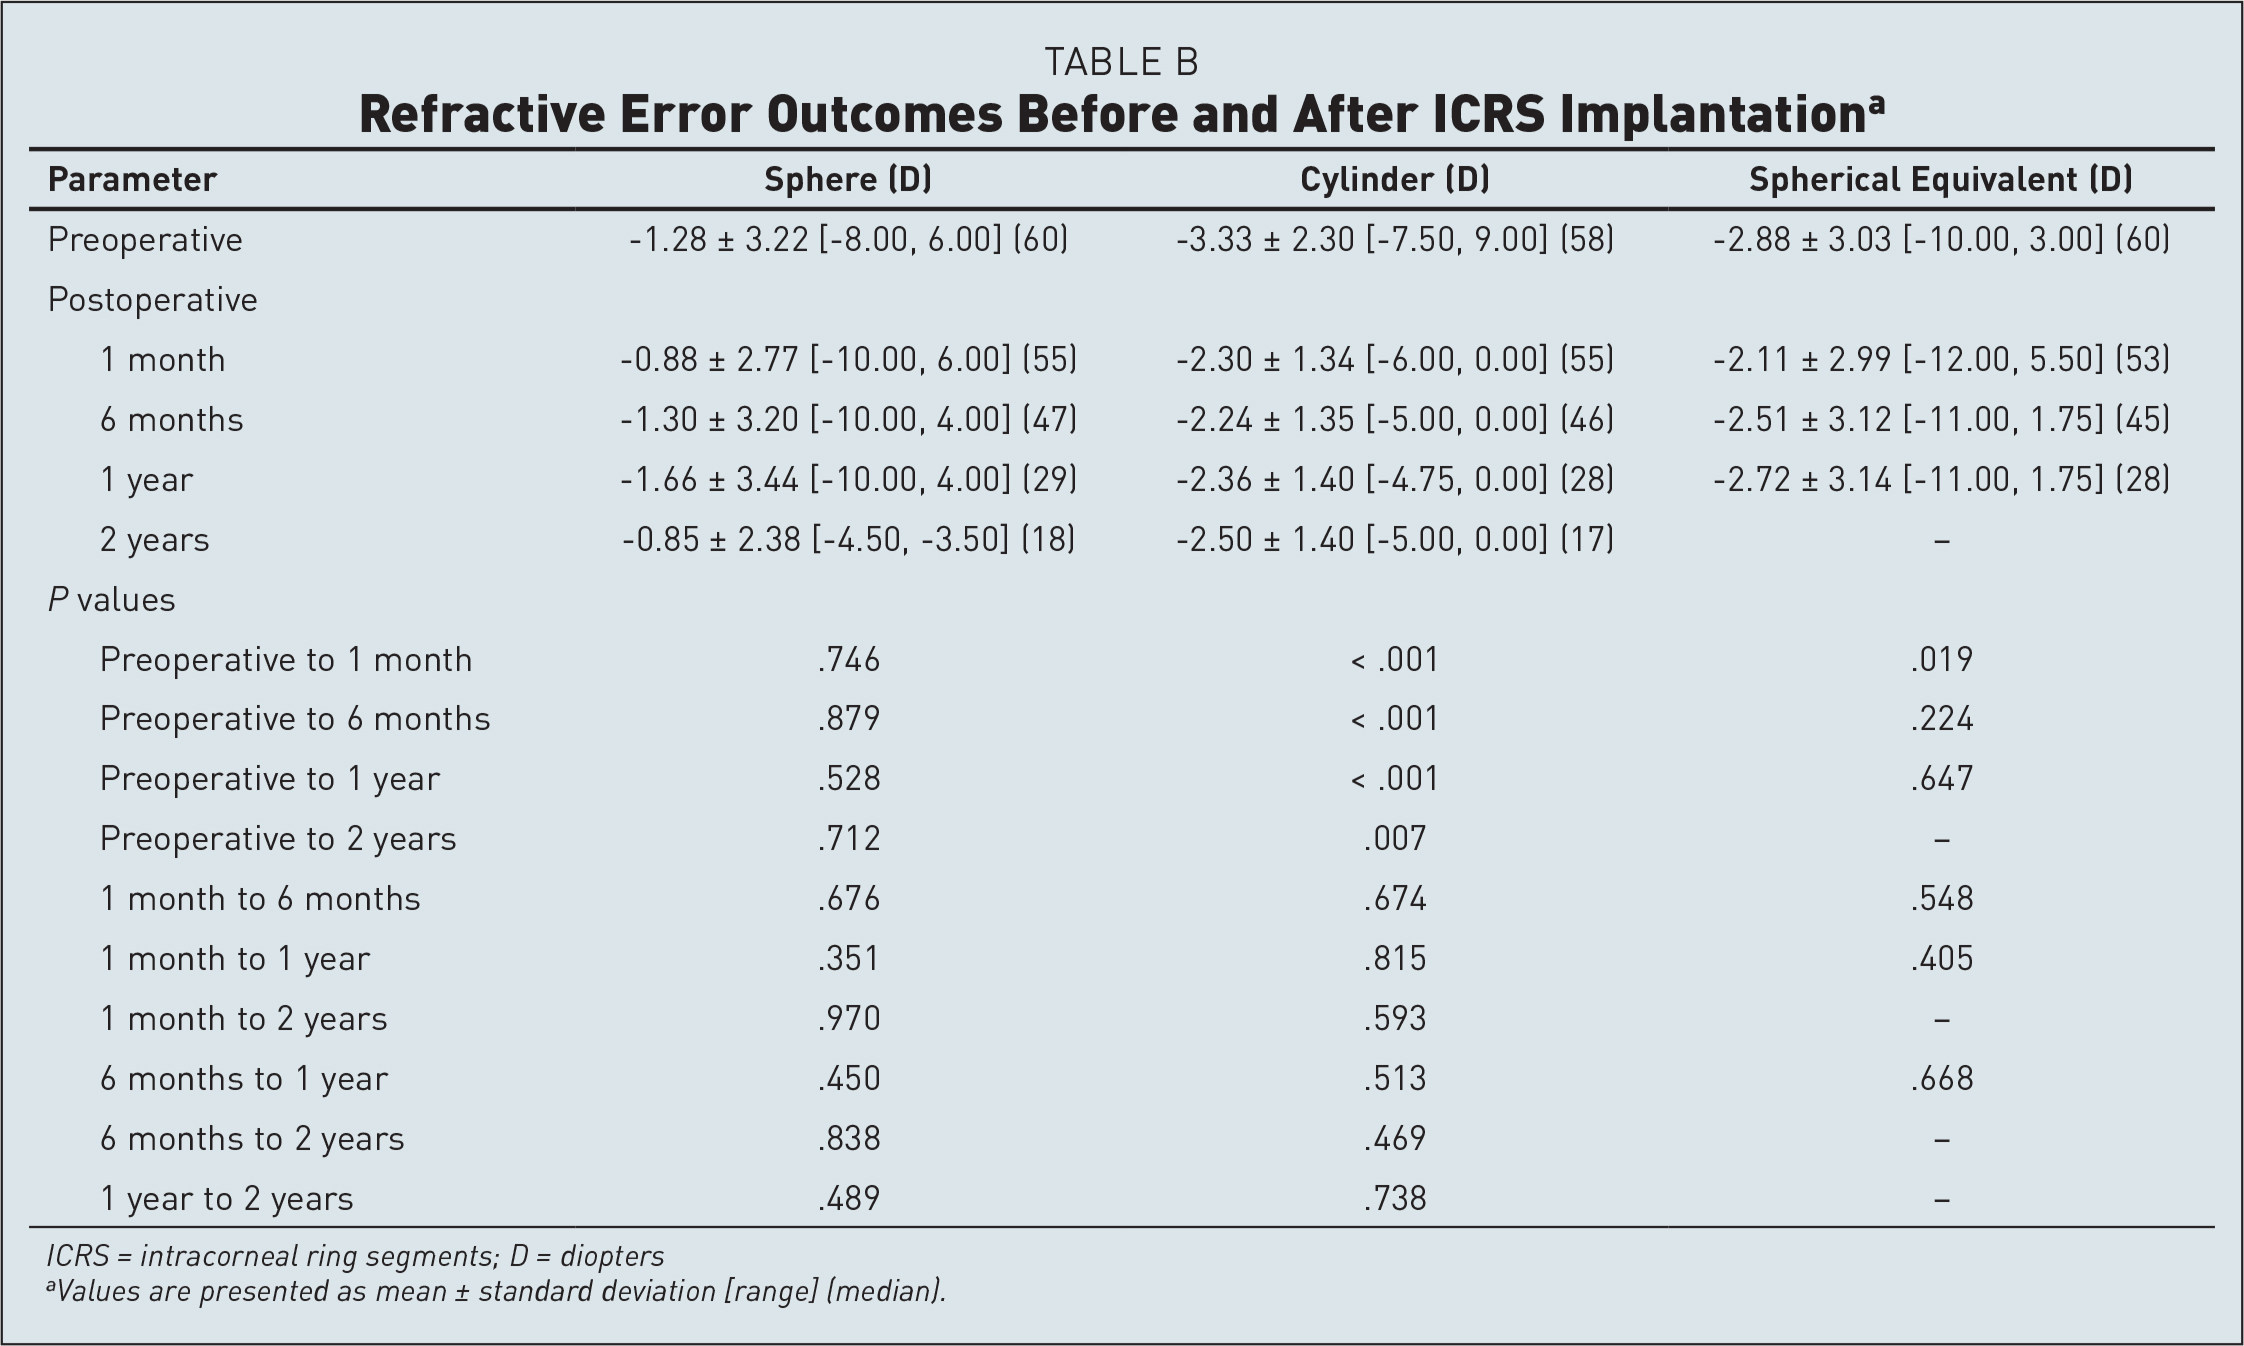 Refractive Error Outcomes Before and After ICRS Implantationa